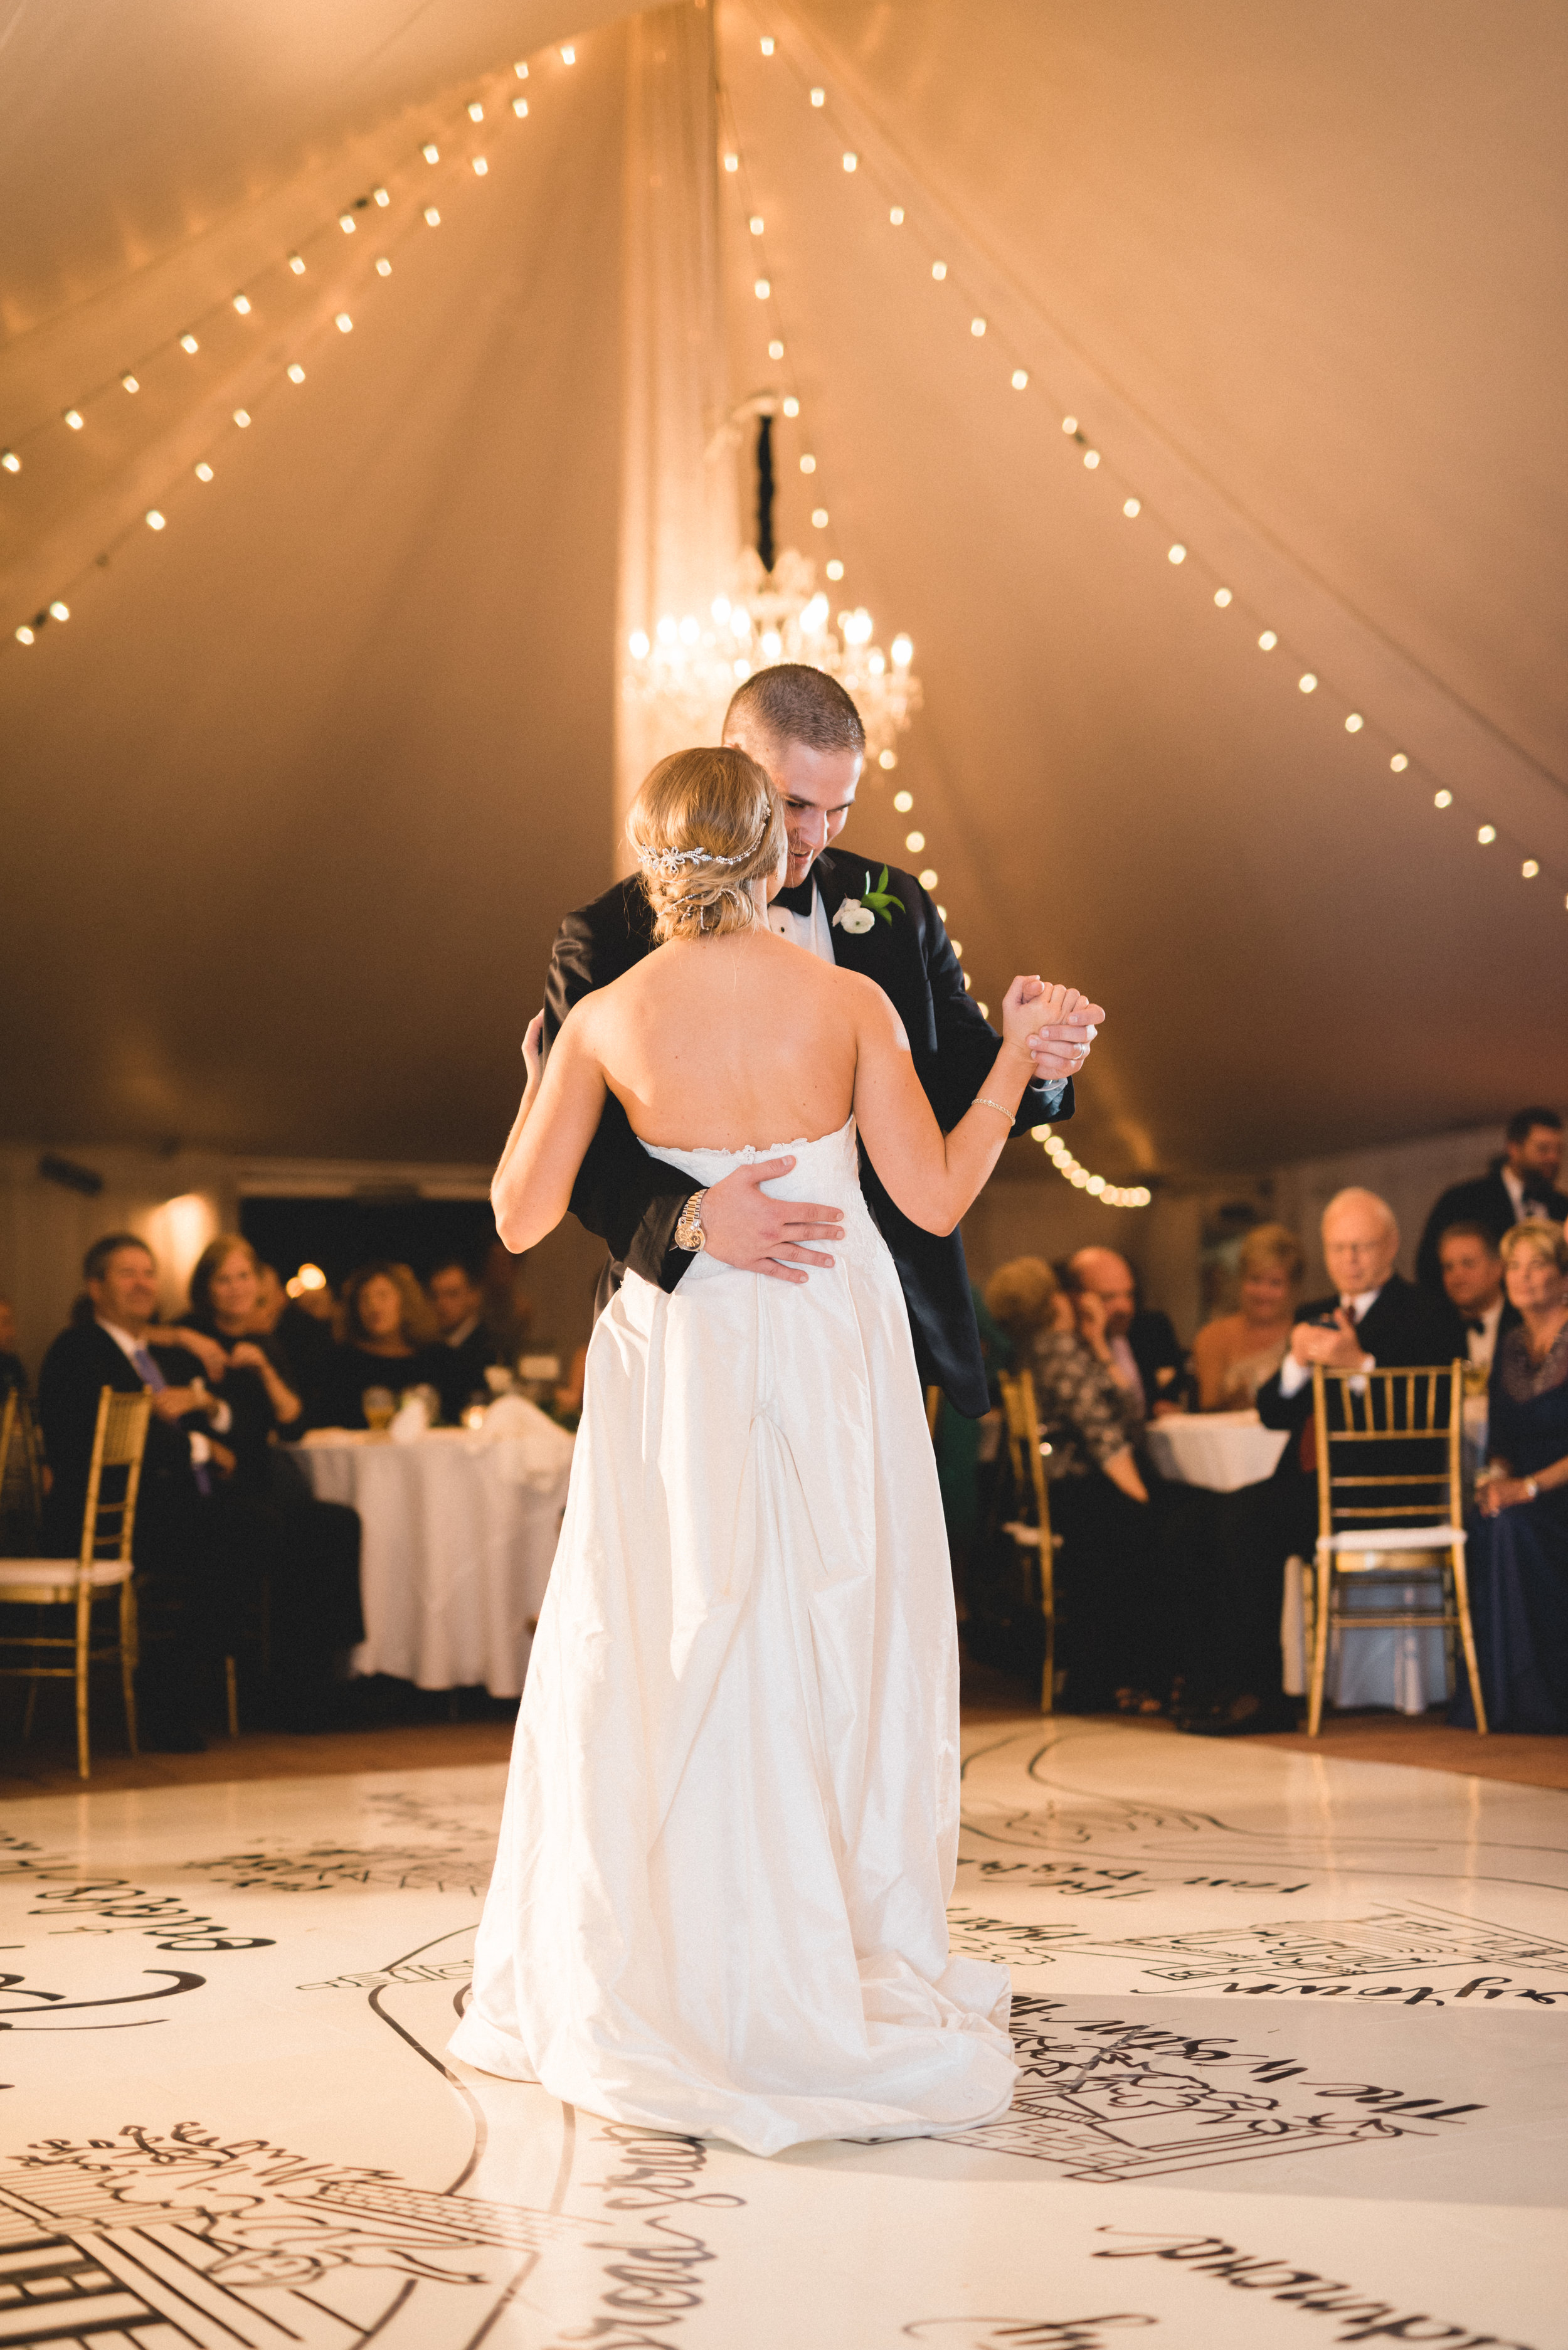 Brielle's silk wedding gown glided across this amazing floor like that of a princess dancing at the finest ball.